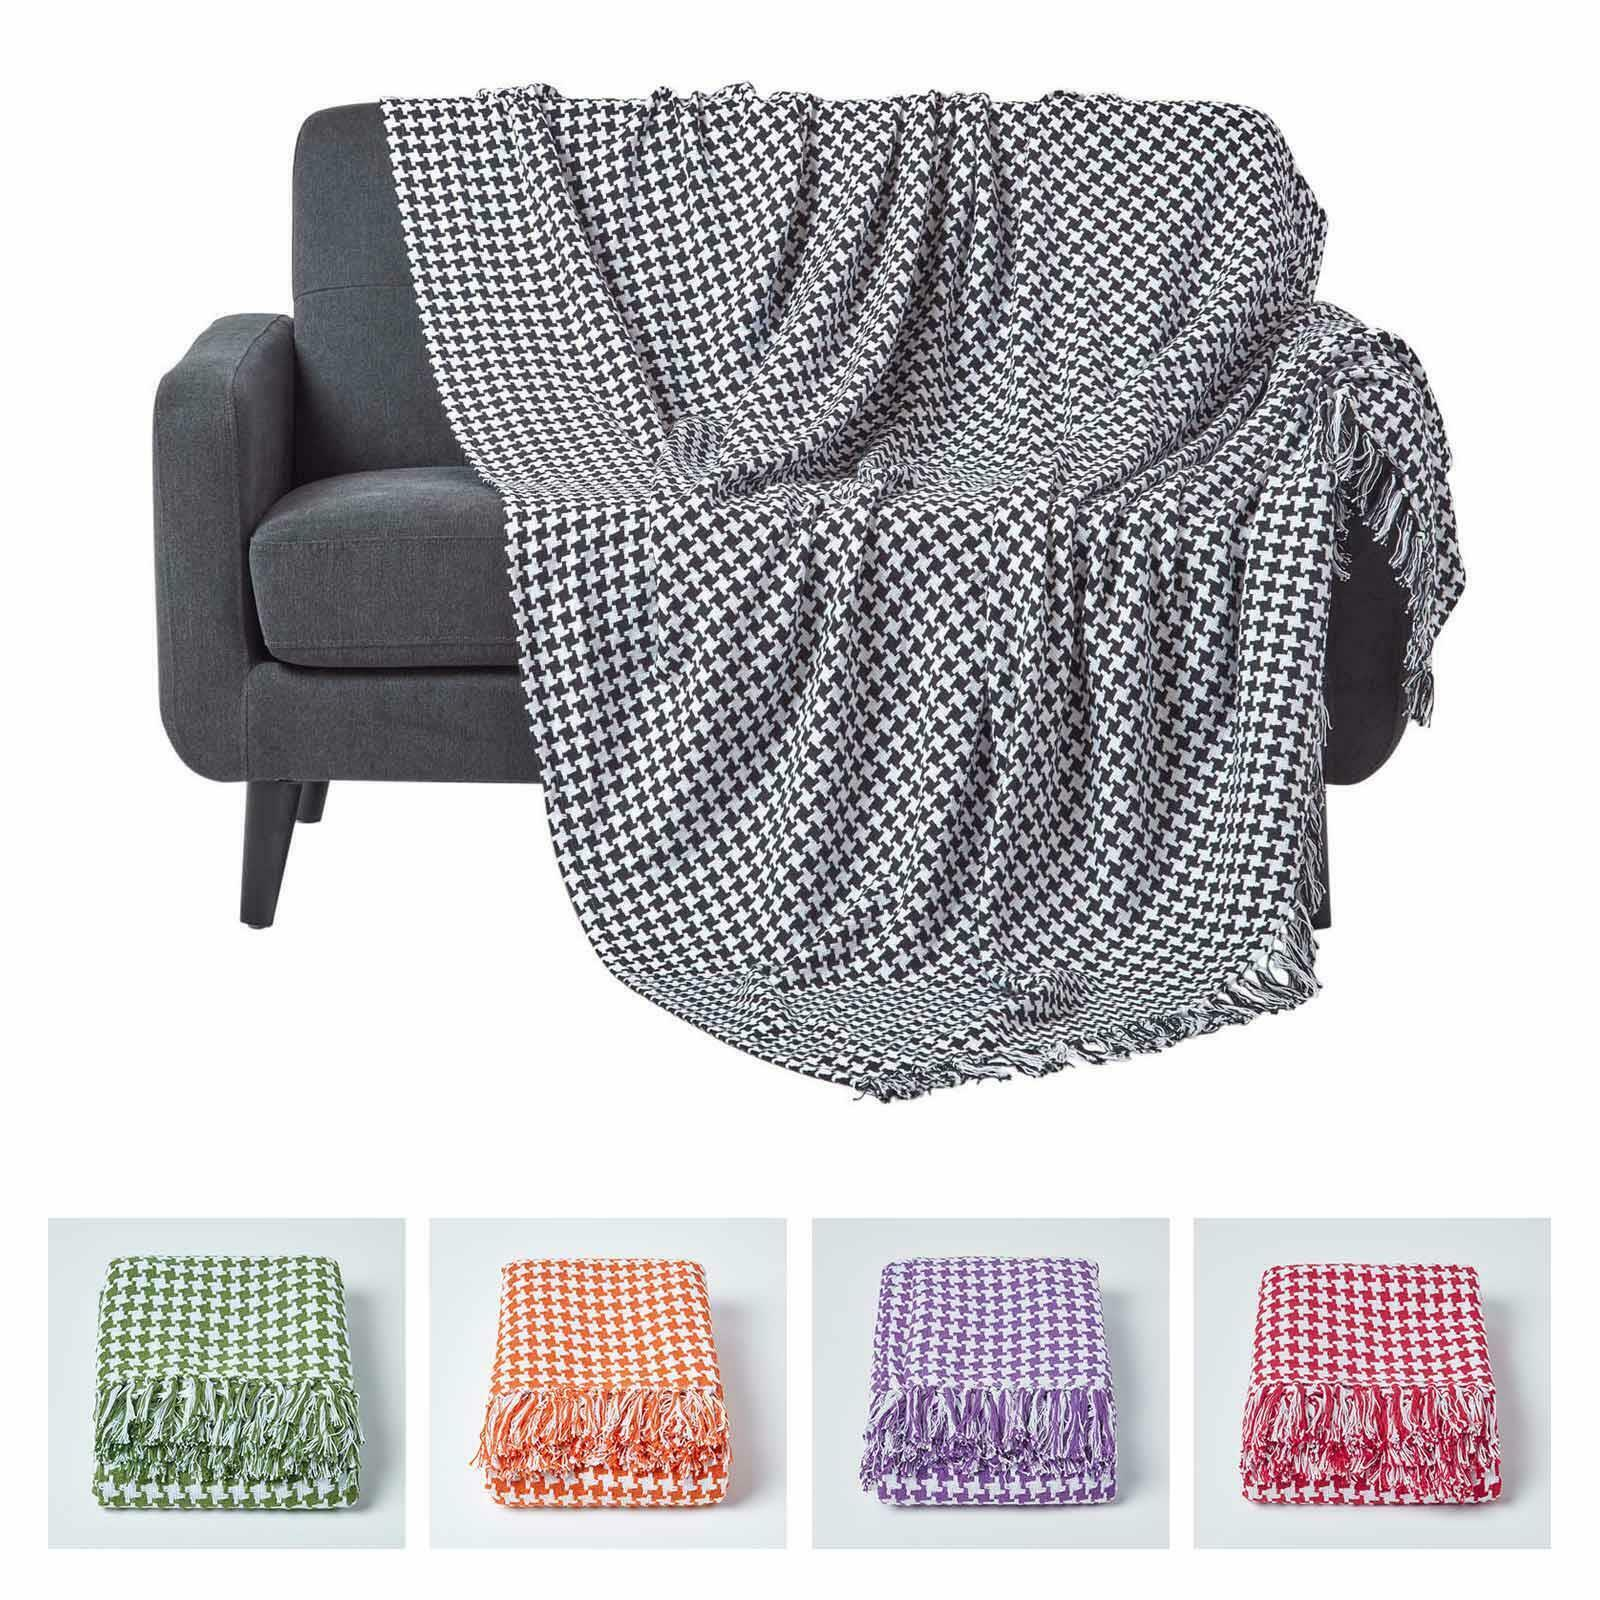 Houndstooth Cotton Check Extra Large Sofa Bed Throws Blanket Dogtooth Bedspreads 1 Of 1free Shipping